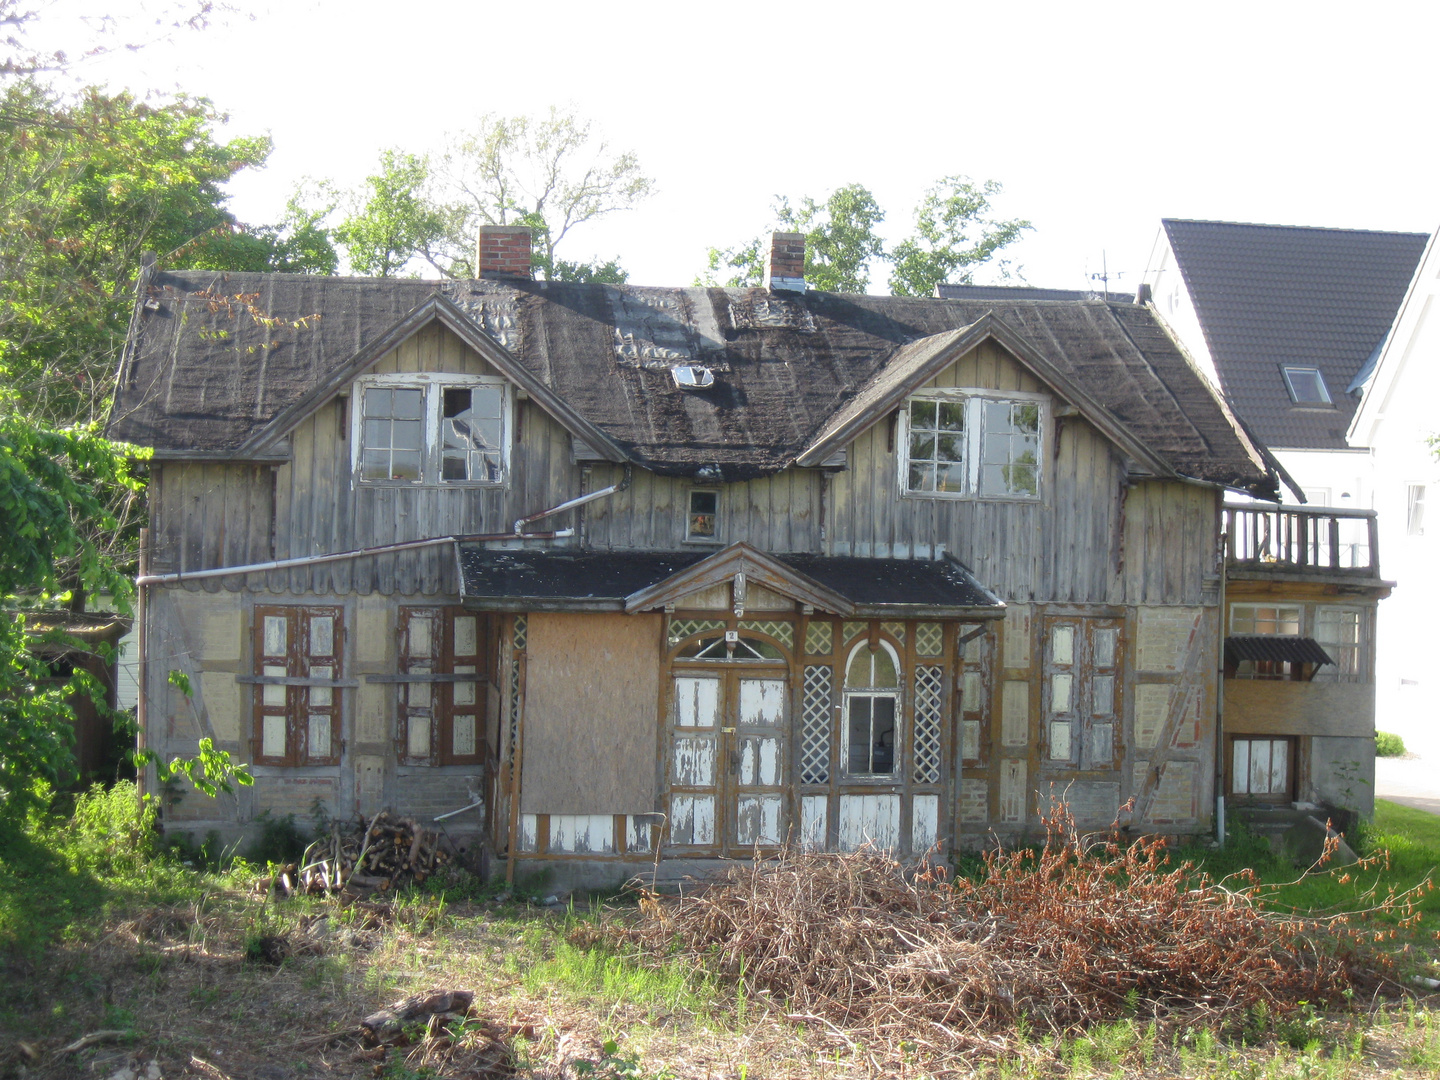 Traumhaus foto bild architektur lost places motive for Traumhauser bilder